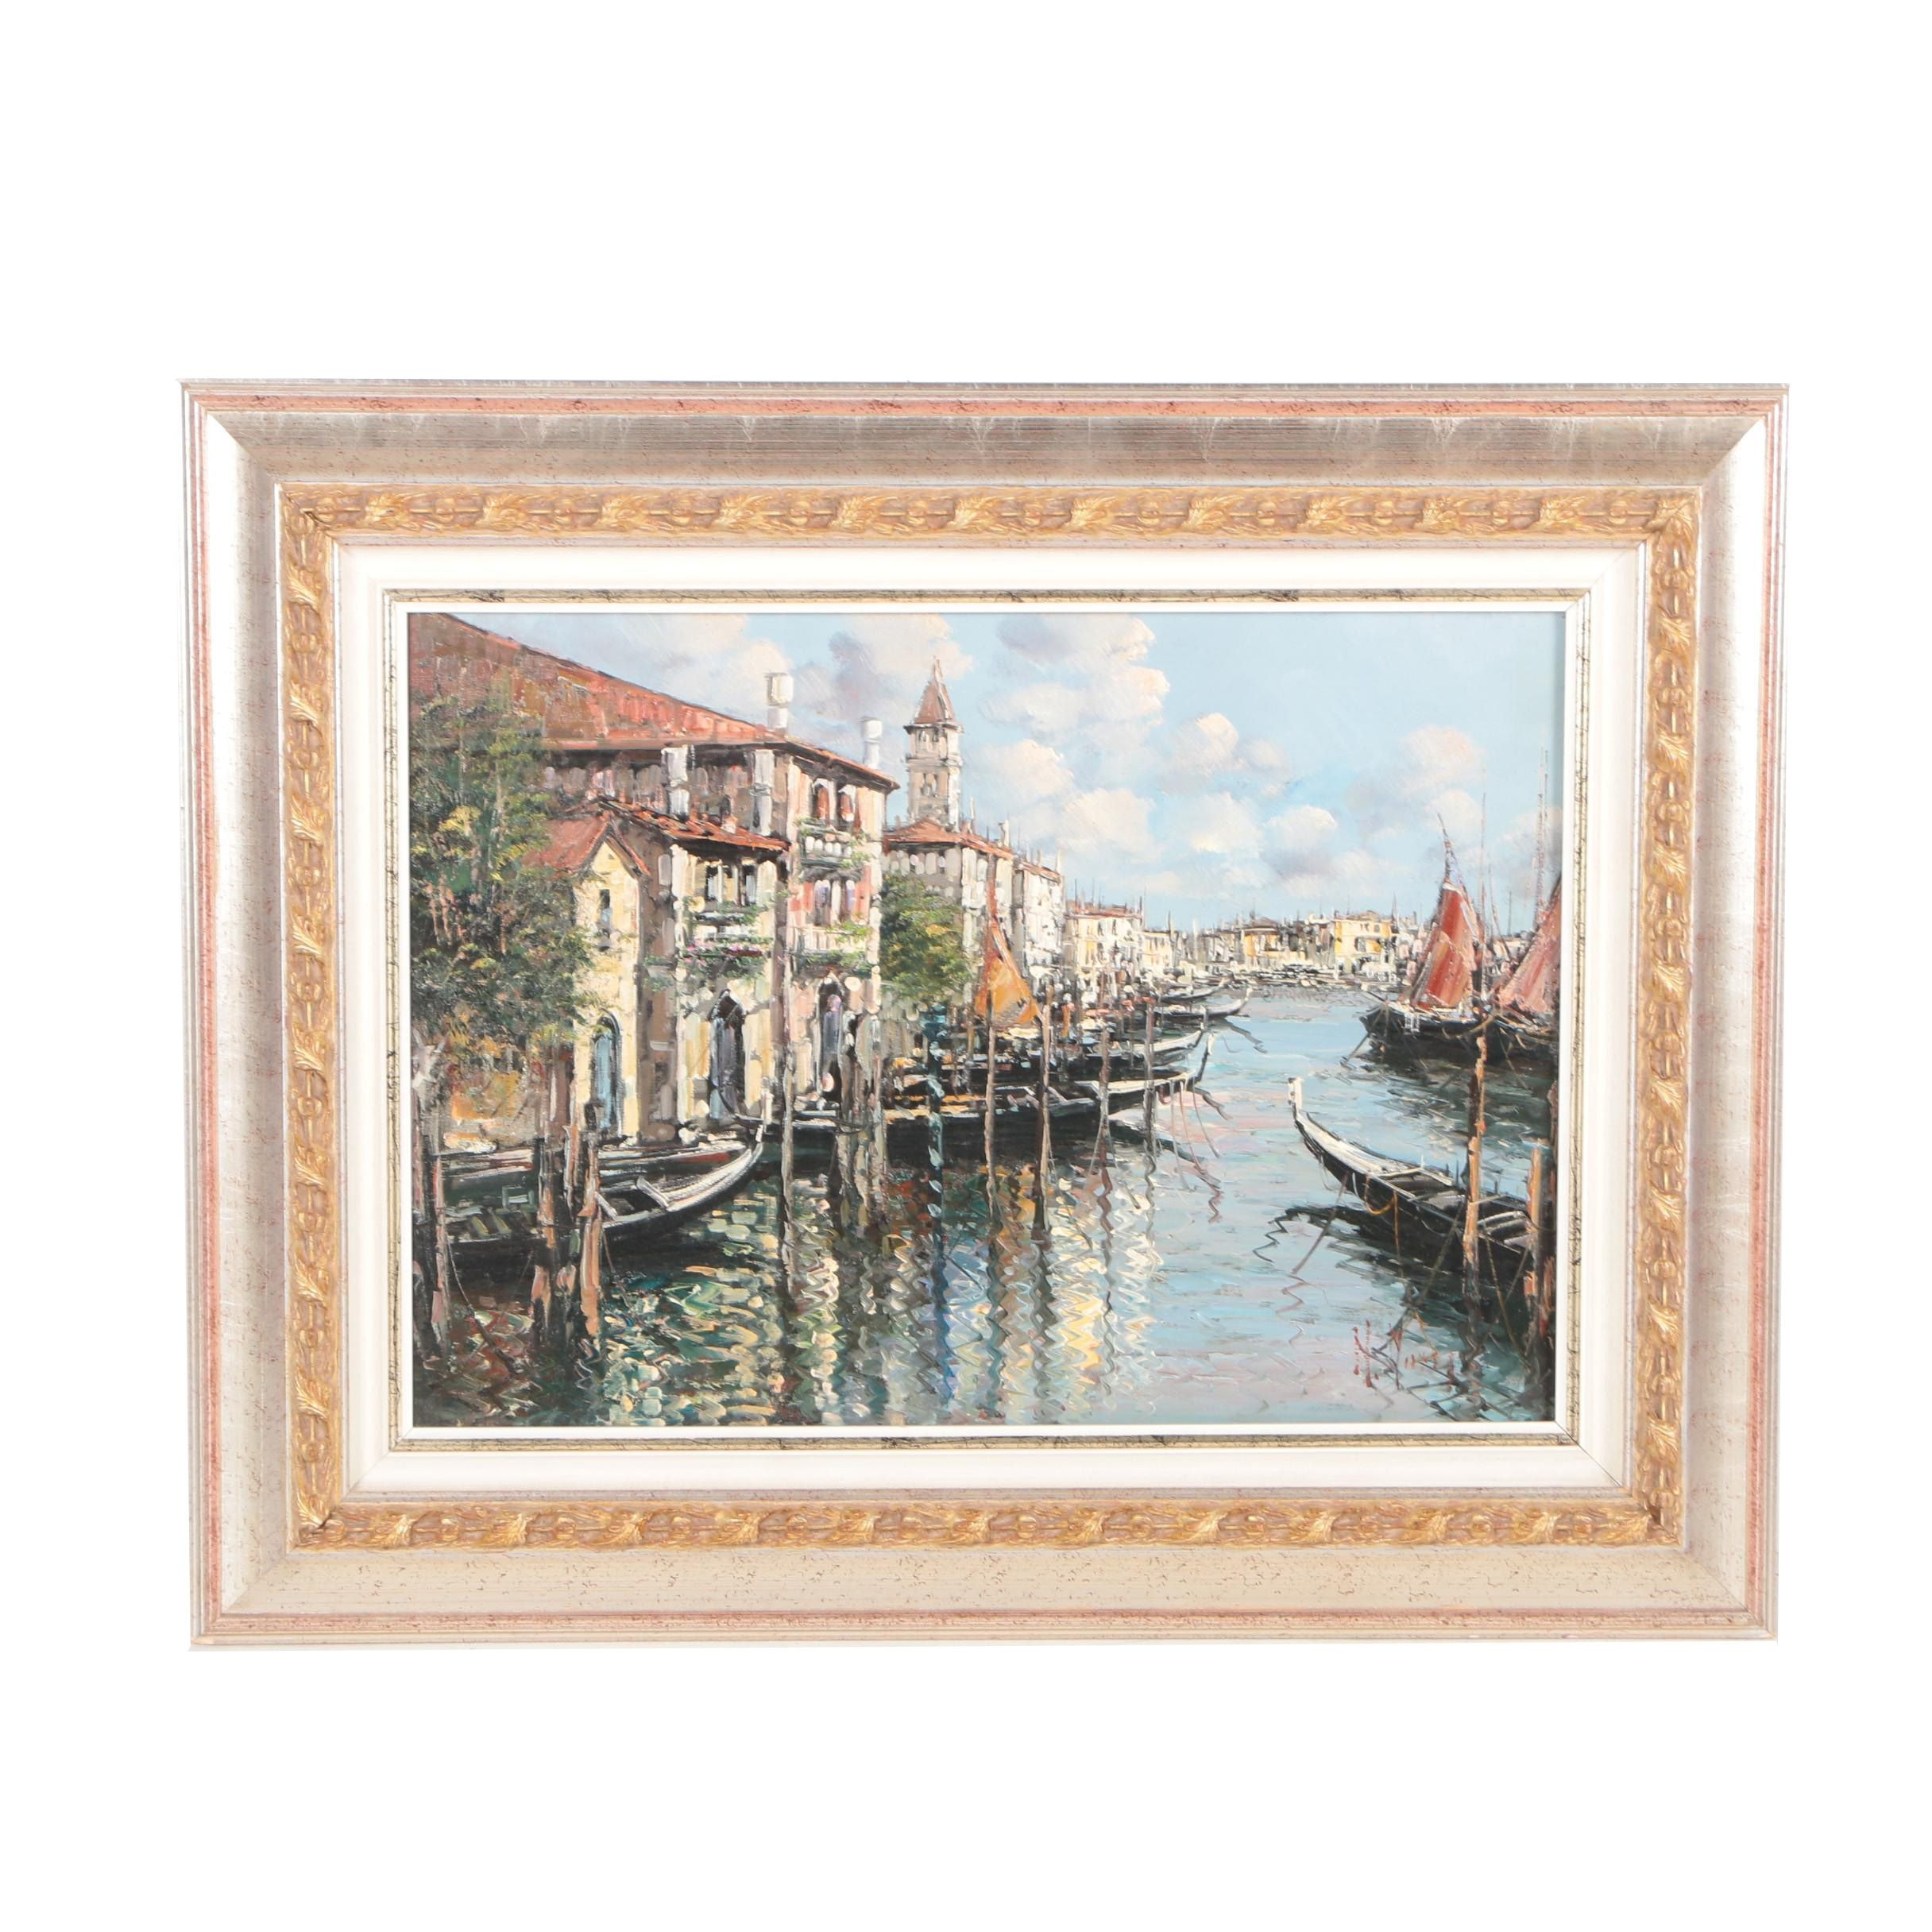 Oil Painting of Venetian Canal